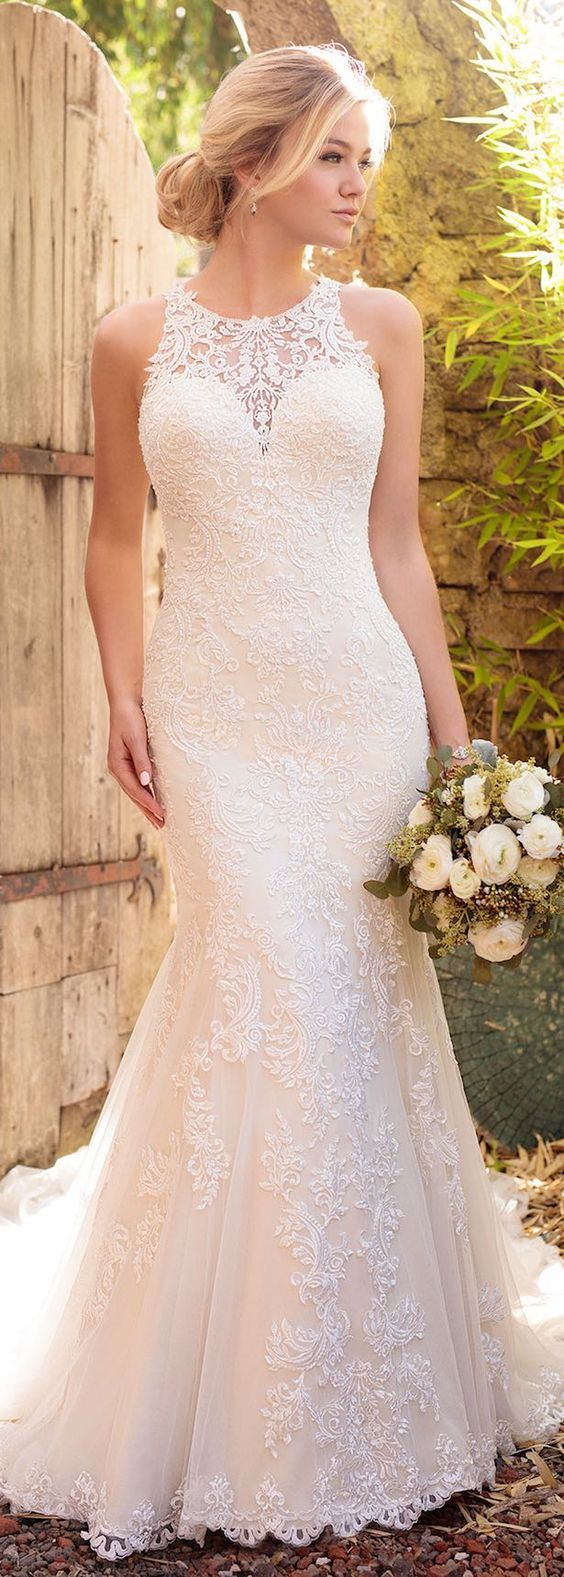 Pin by laura mh on boda pinterest wedding dress weddings and